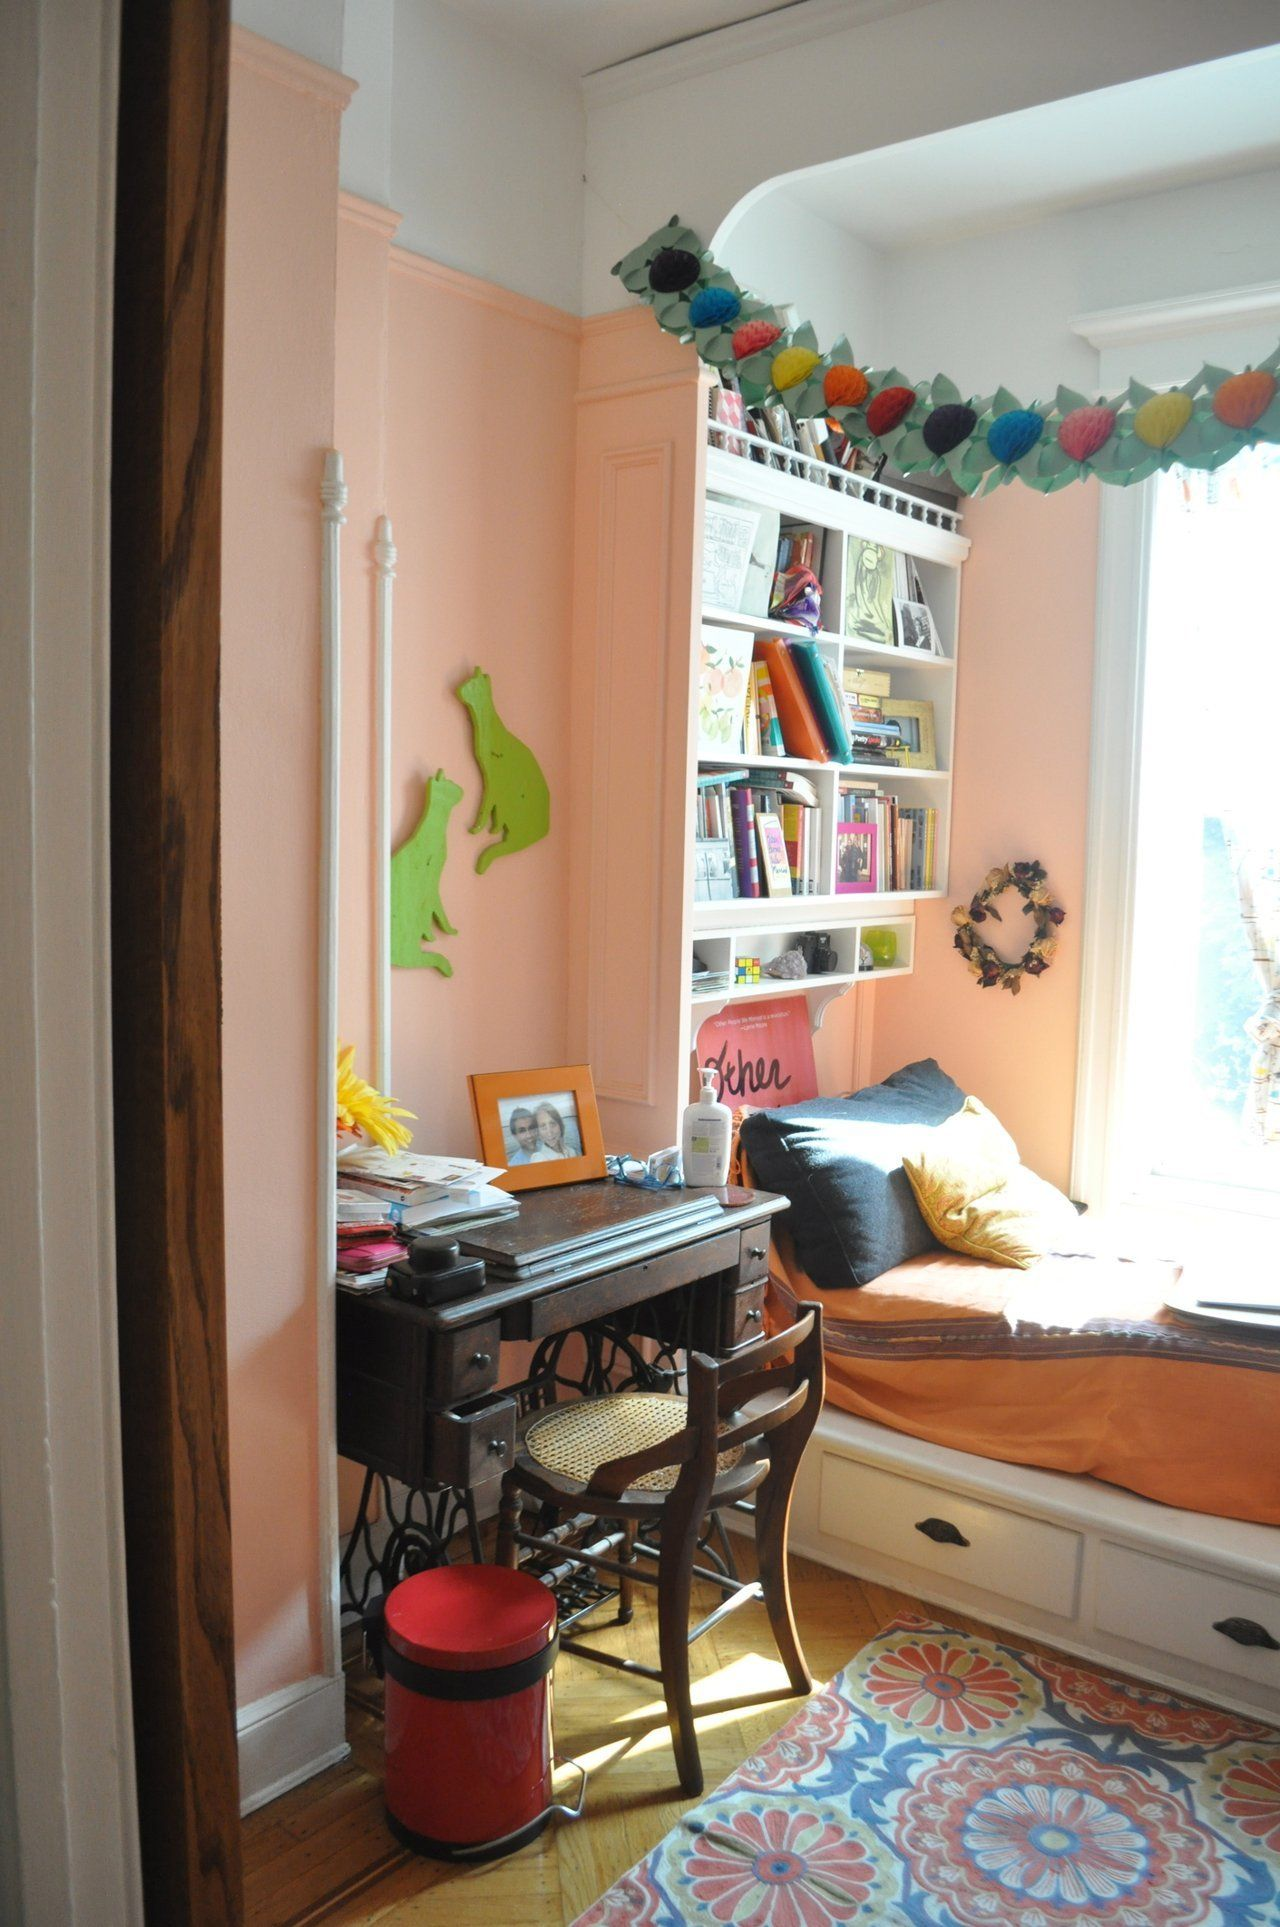 Emma & Mike's Whimsical Home in Brooklyn Bedroom decor